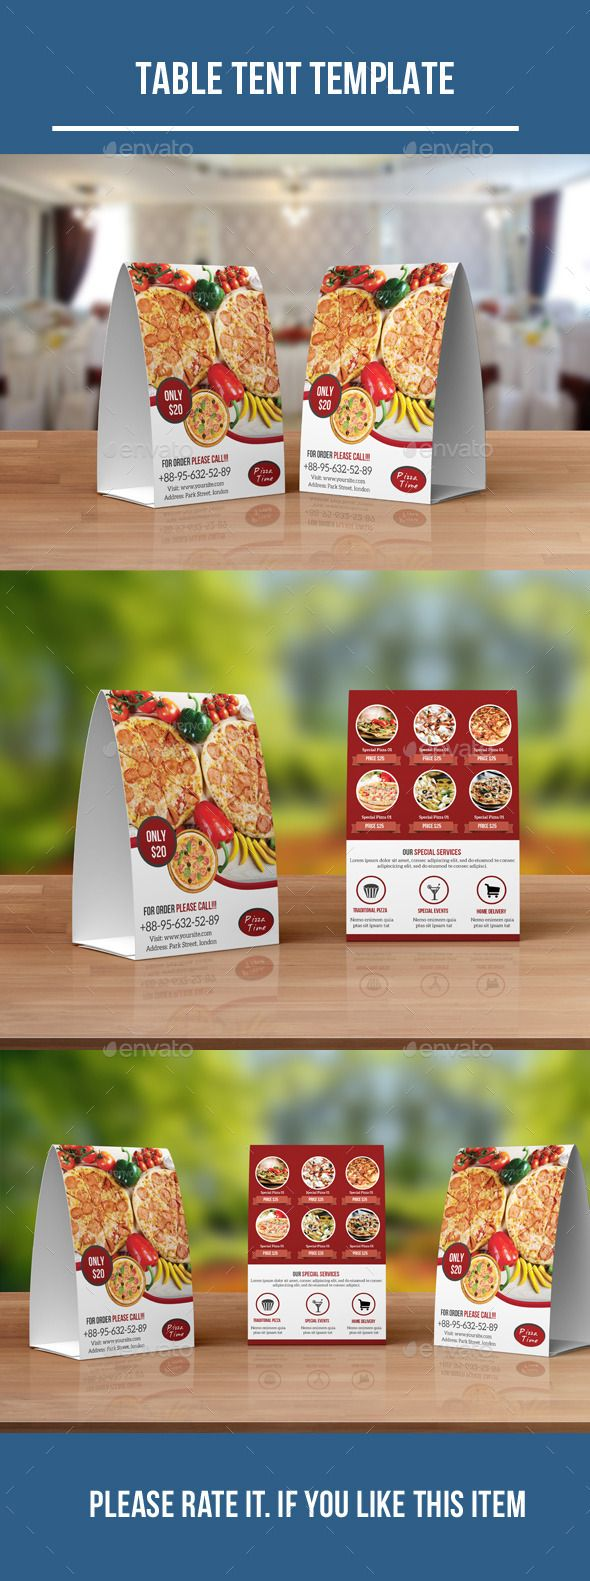 Food Menu Table Tent : table tent design template - memphite.com